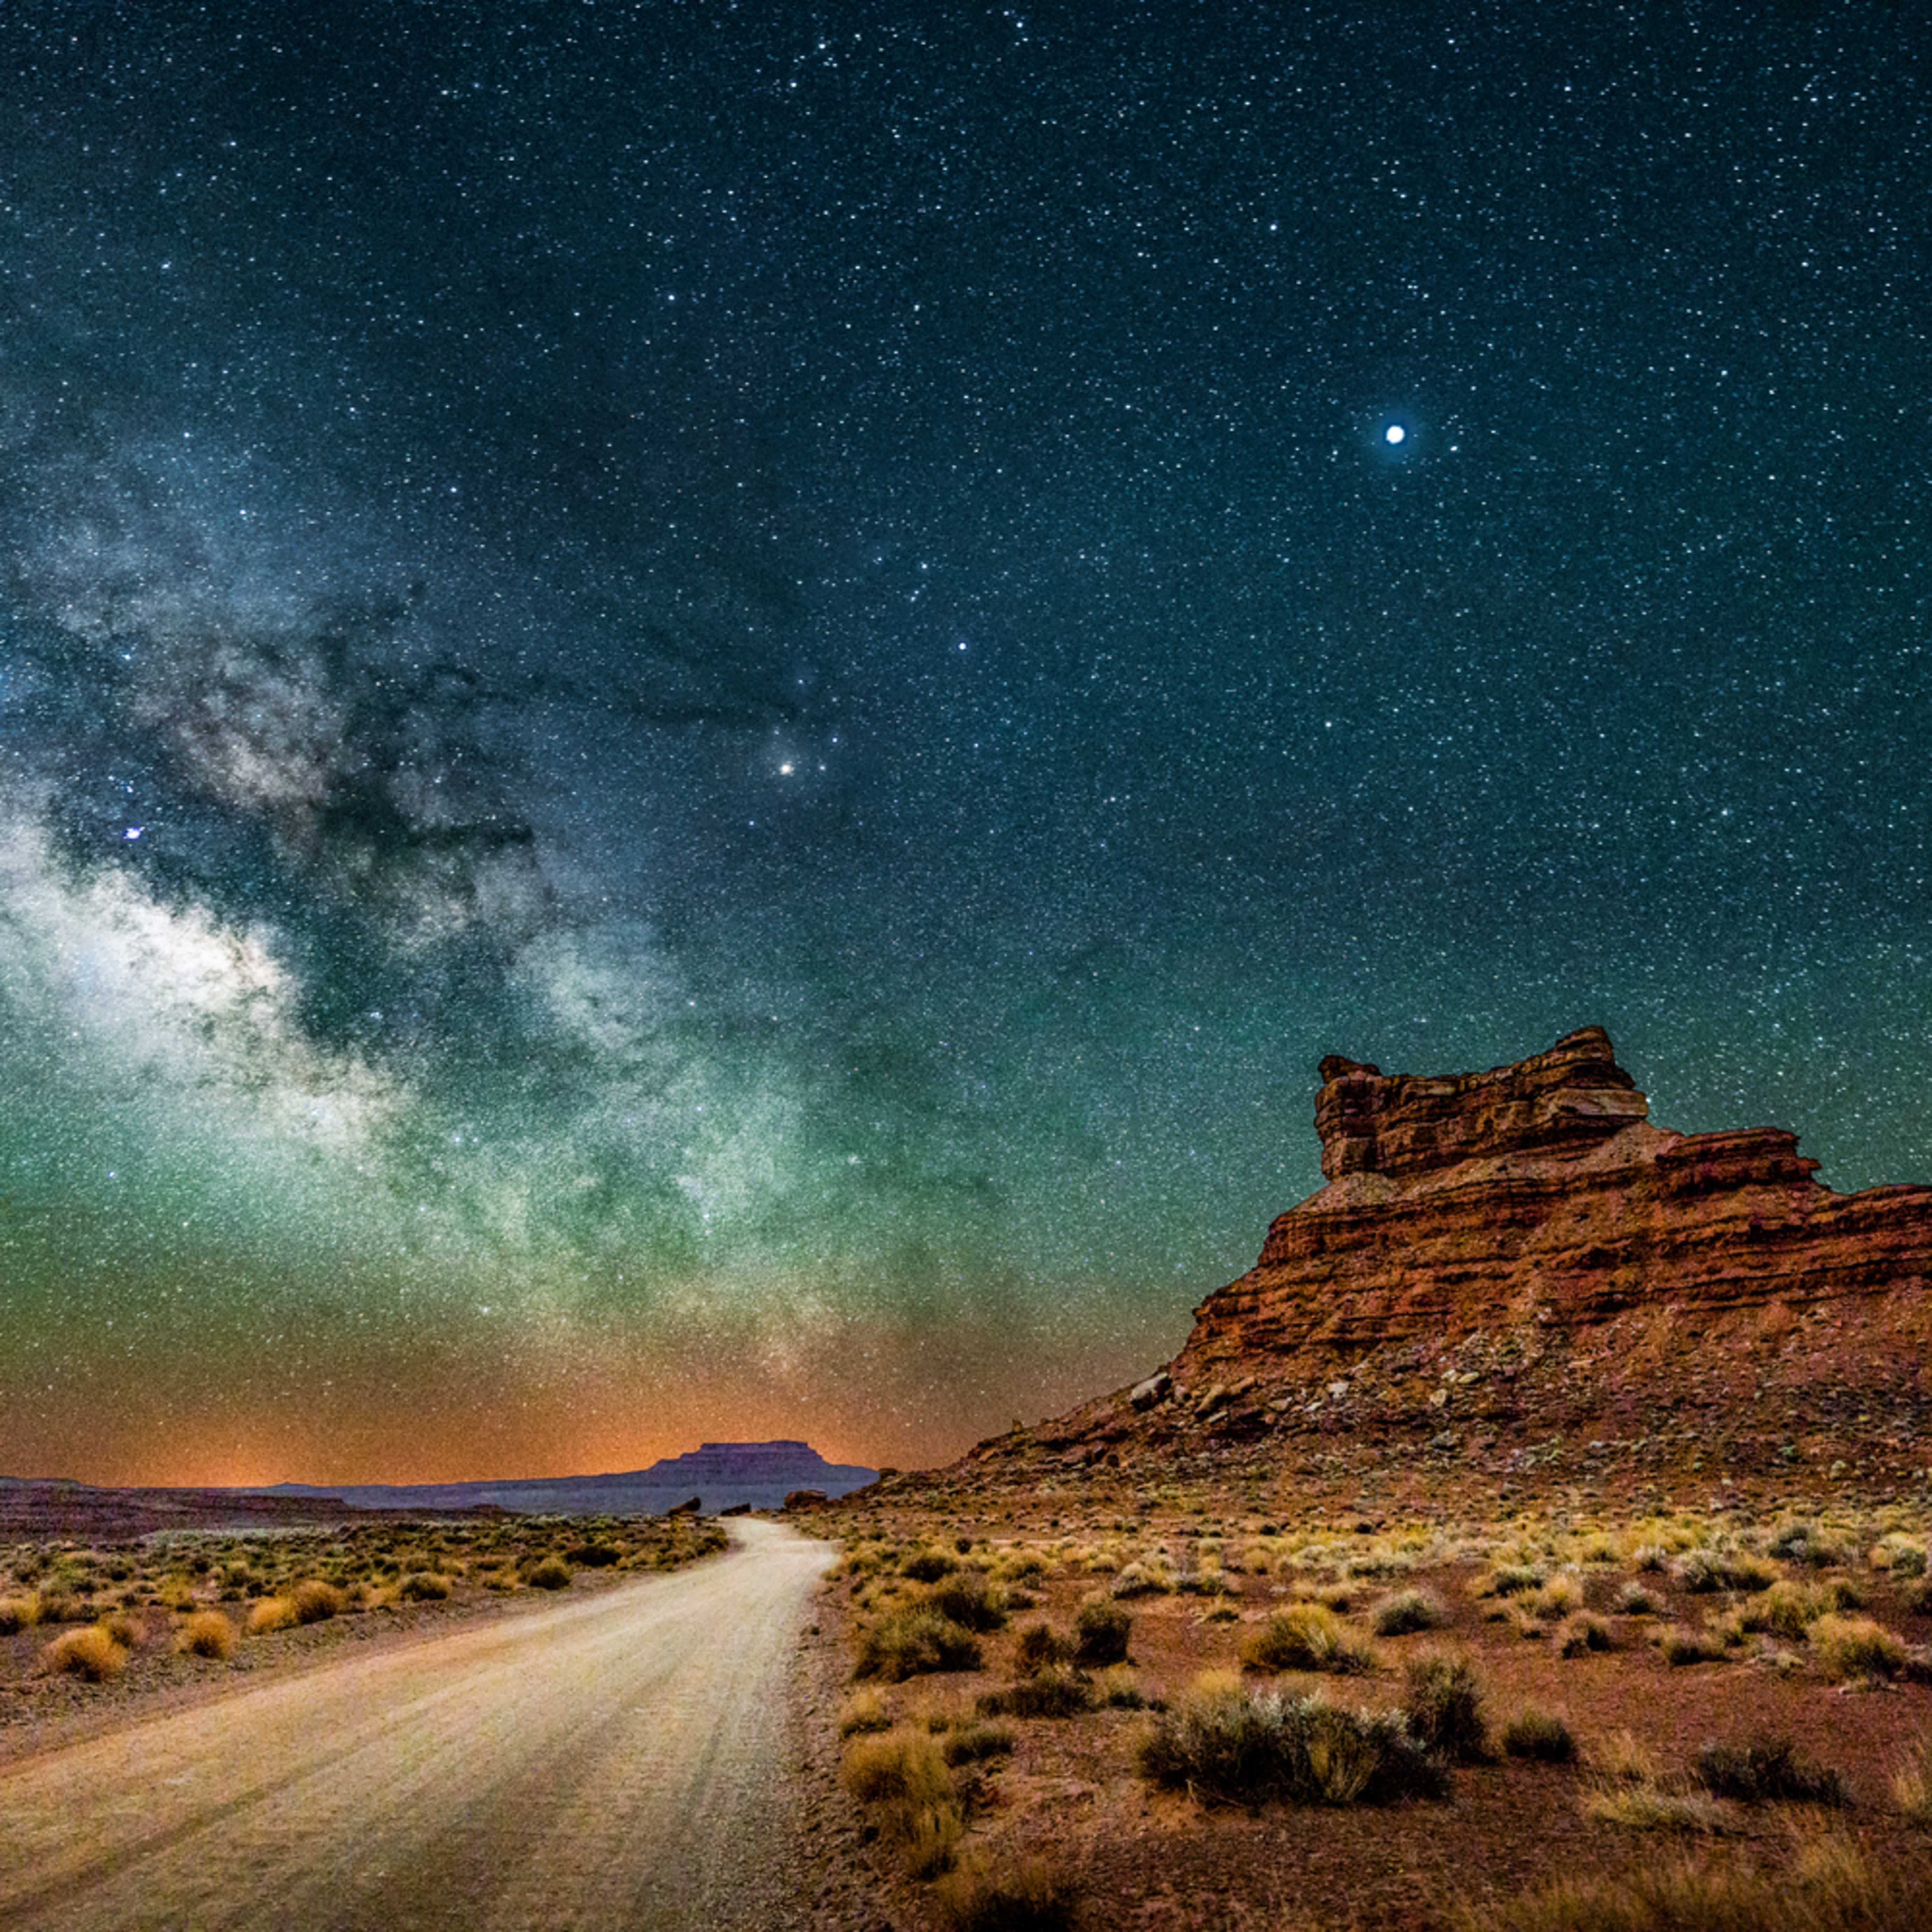 Valley of the gods nightscape 053 highway to the heavens dp3jni